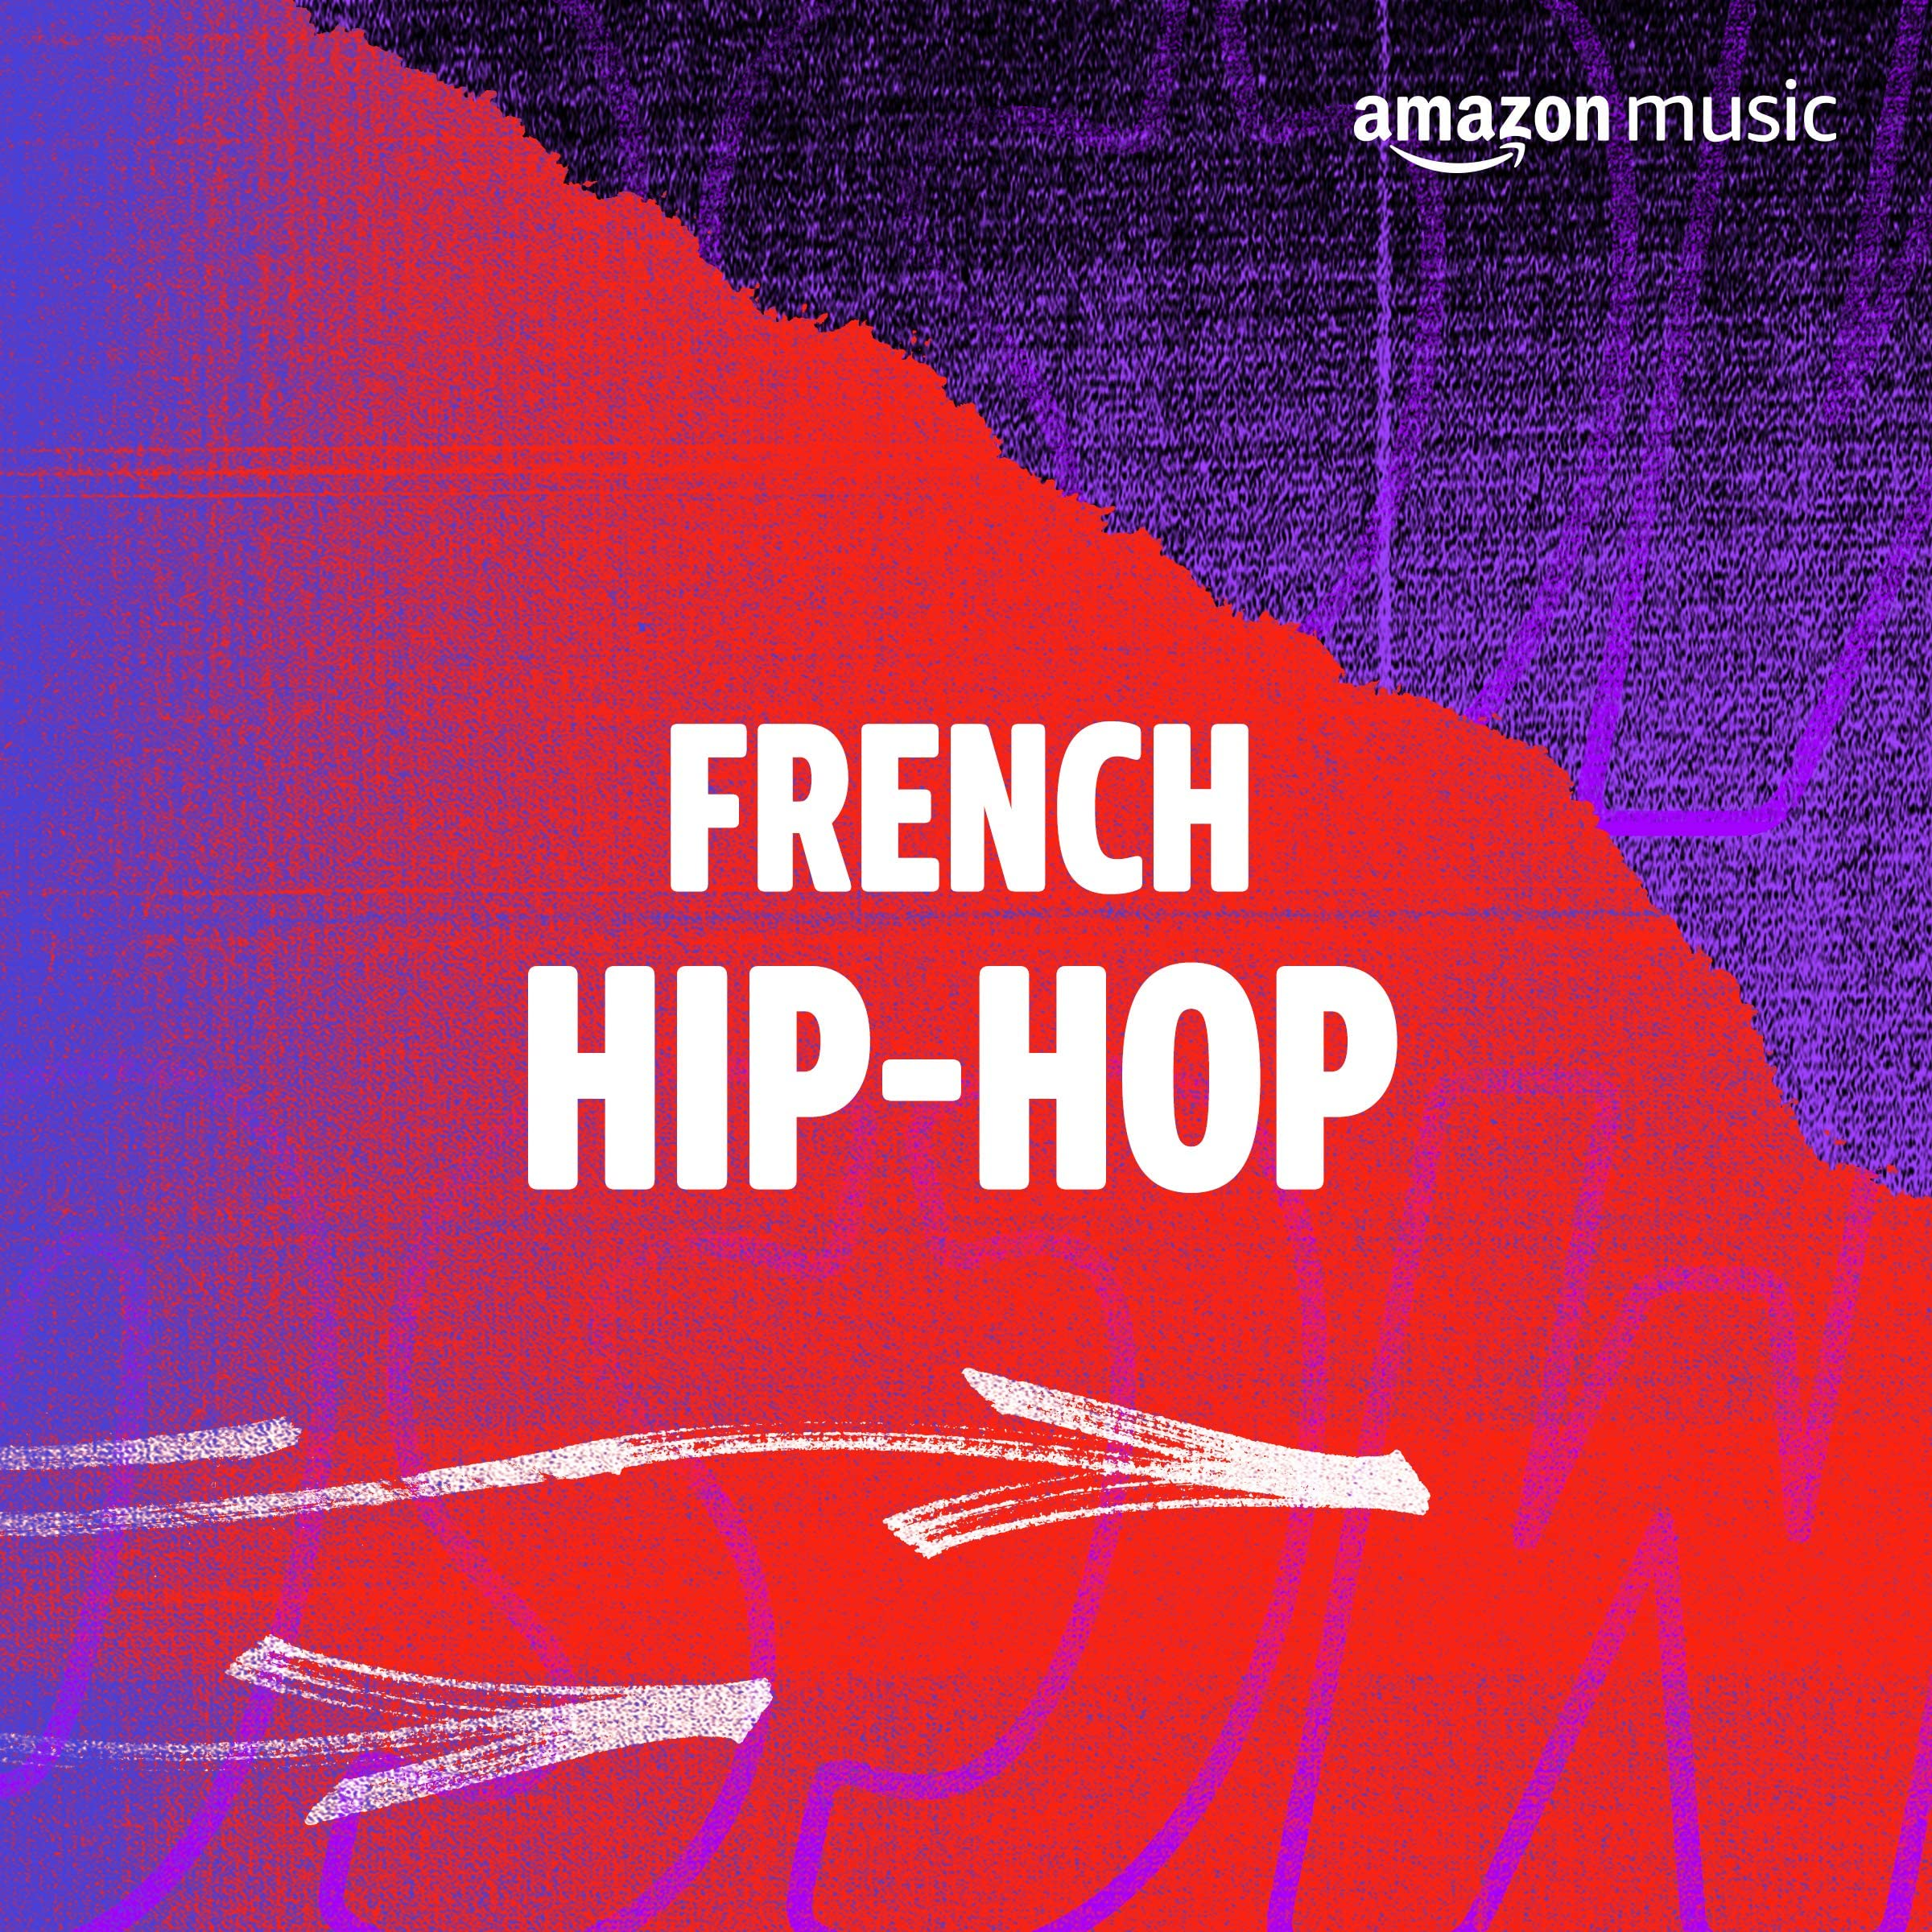 French Hip-Hop